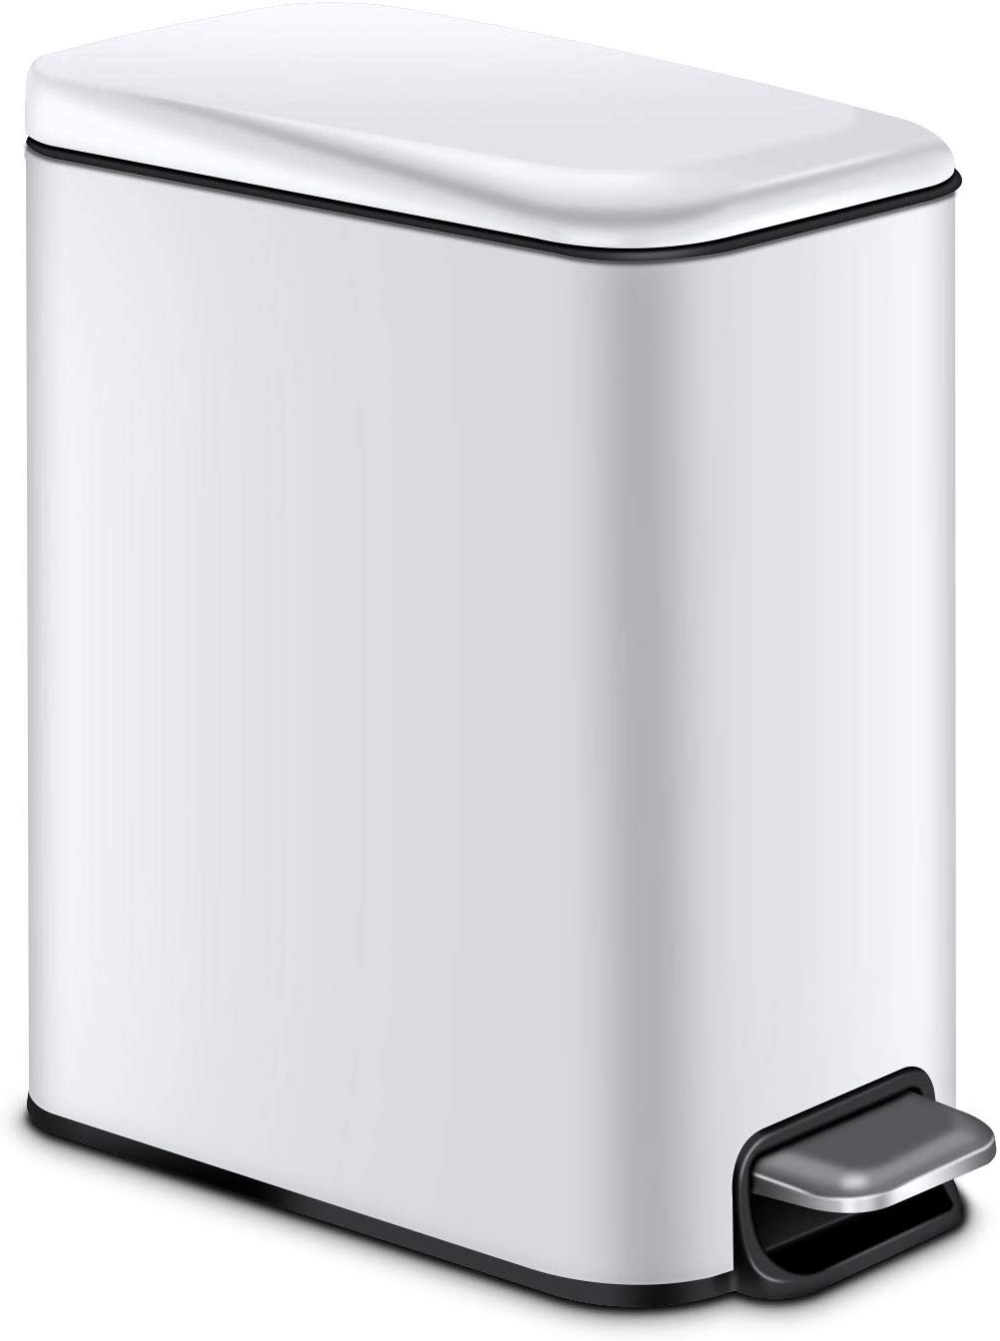 Amazon Com Magdisc Small Trash Can For Bathroom Home Office 5 Liter 1 3 Gallon Rectangular Step Garbage Ca Bathroom Trash Can Trash Can Indoor Trash Cans Small stainless steel trash can